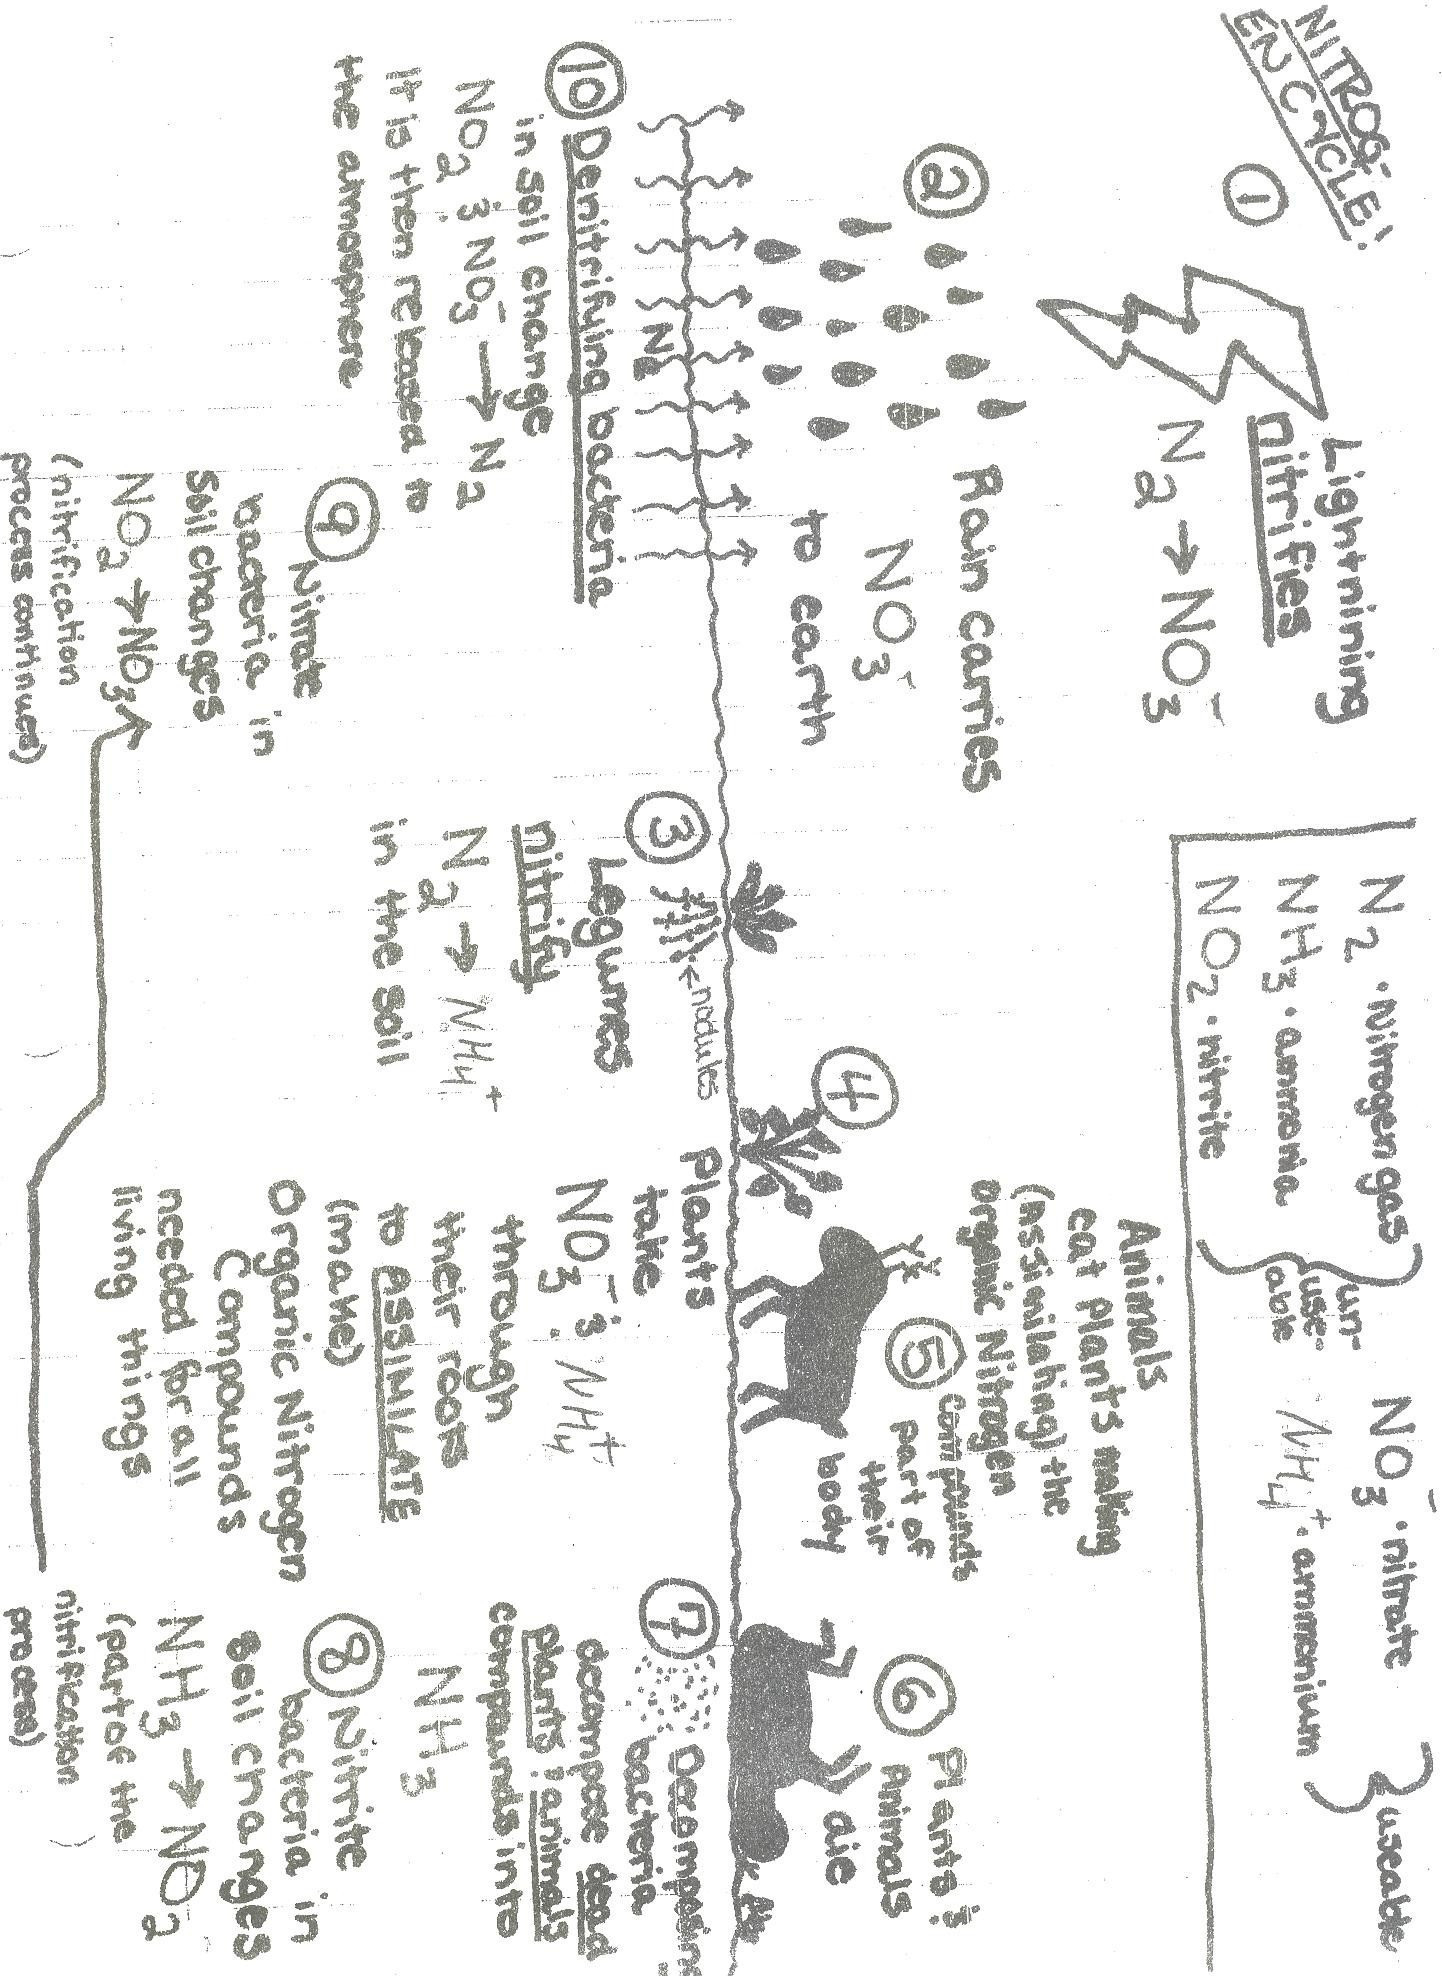 Nutrients The Carbon Cycle Worksheet By Harwooda Manual Guide